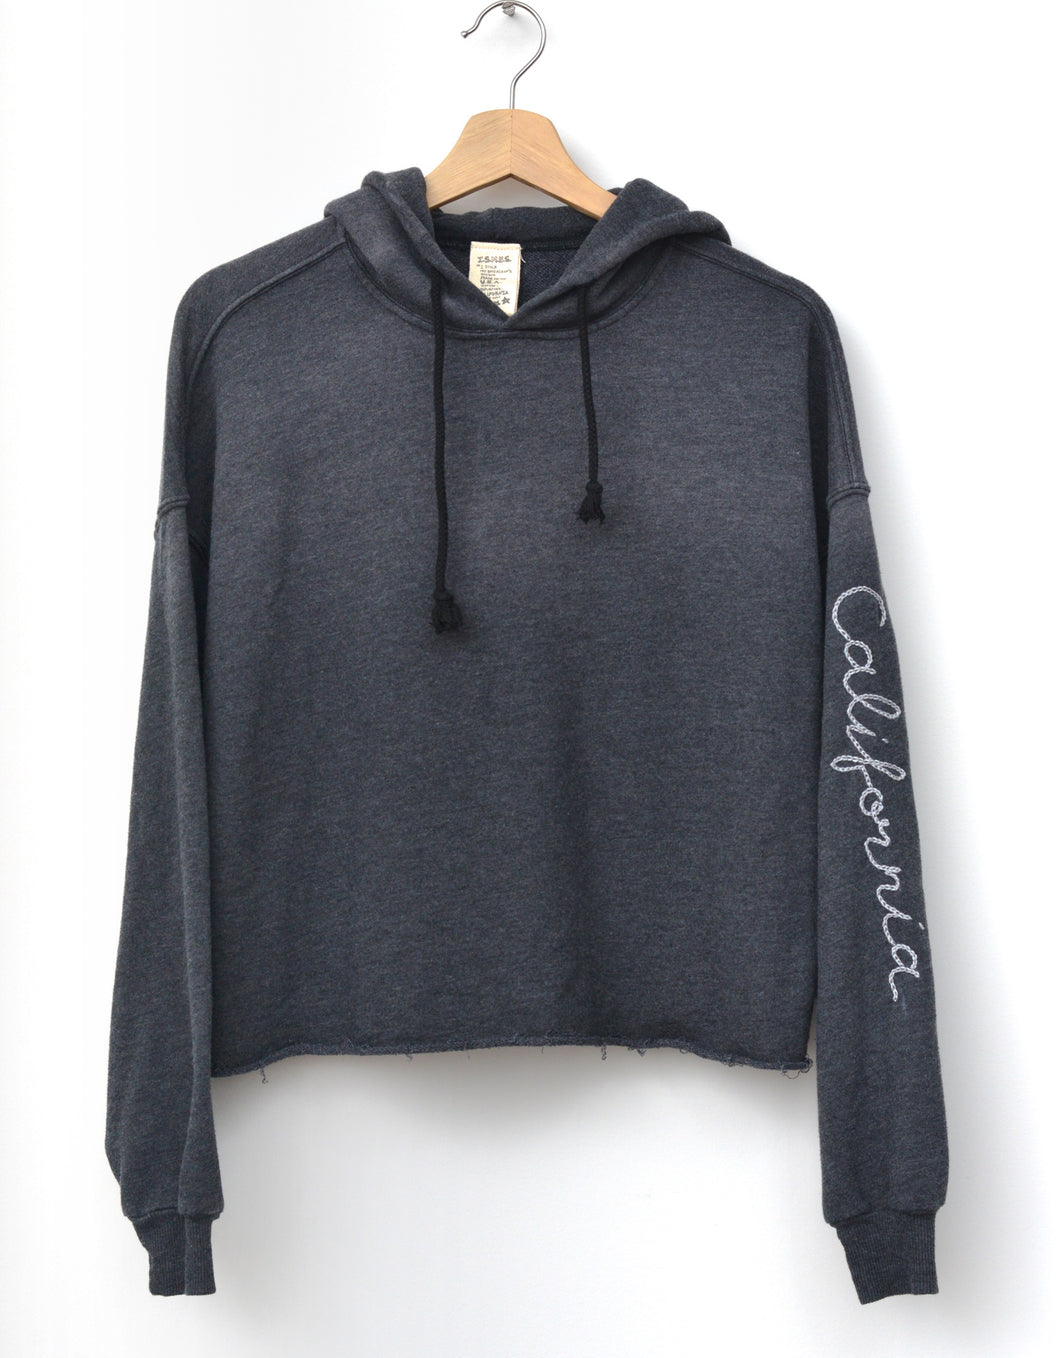 Sierra Hoodie with California Embroidery- Washed Black